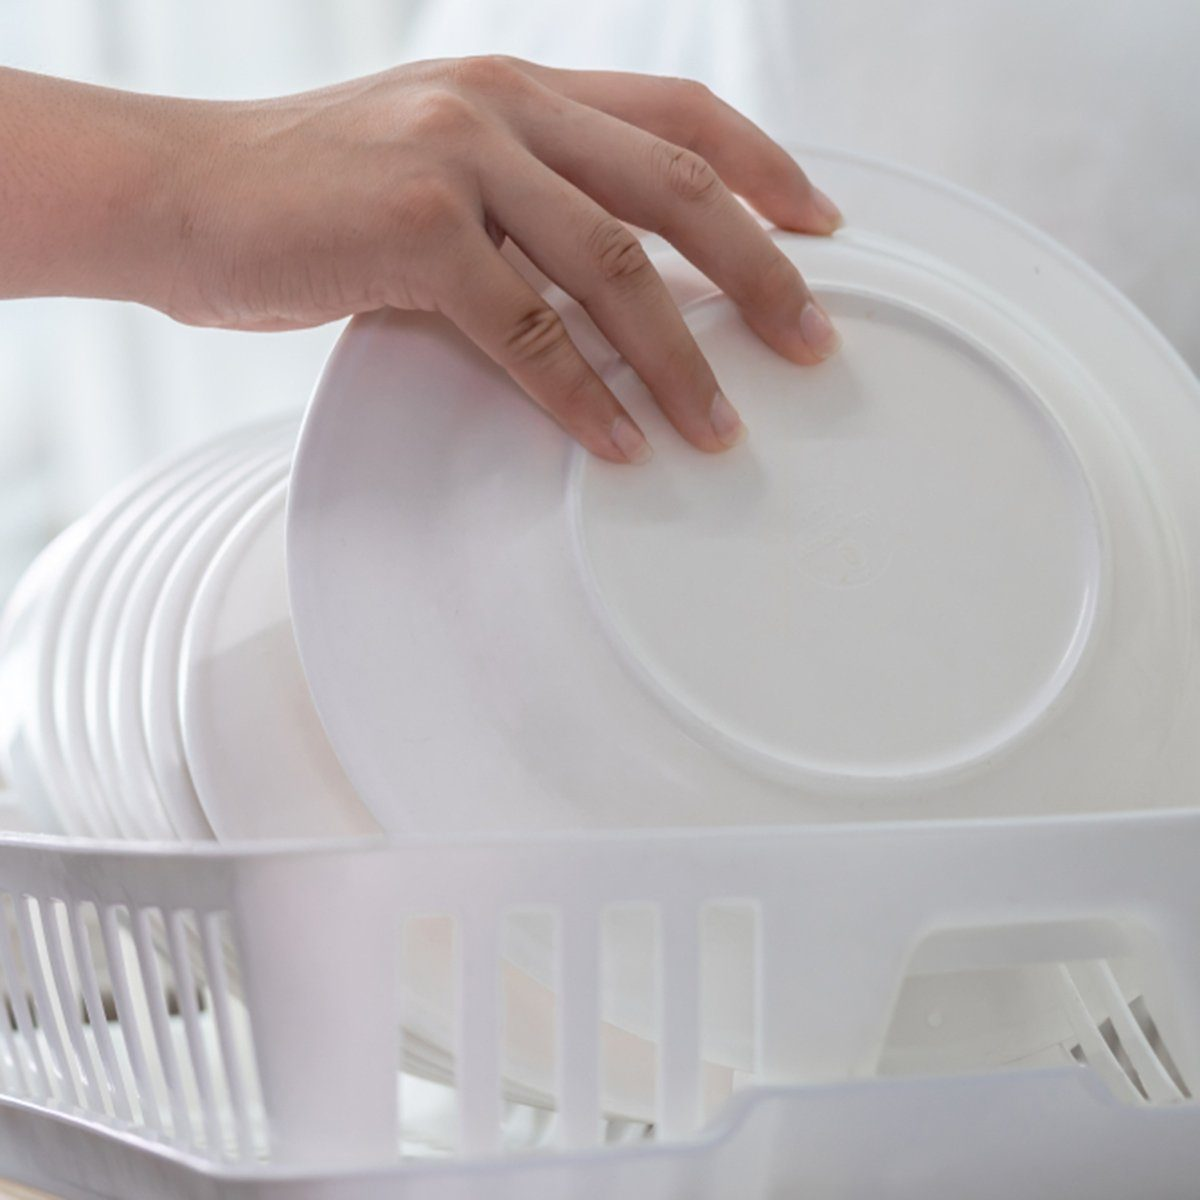 Hand of woman putting just washed clean plate in the dish rack